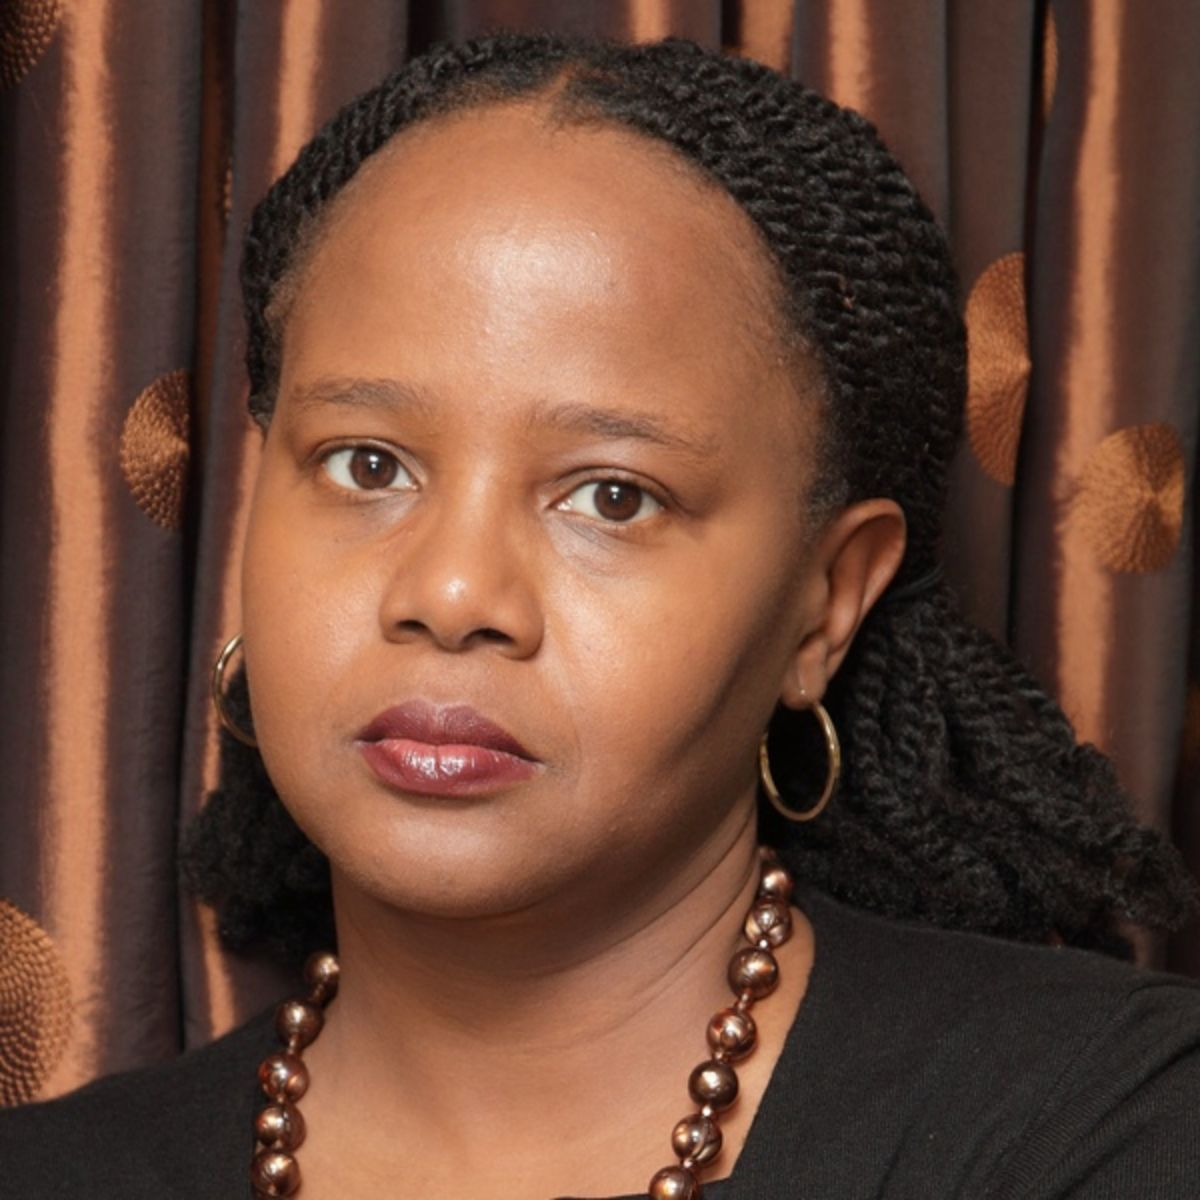 Find Out More About Acclaimed Haitian Writer Edwidge Danticatauthor  Find Out More About Acclaimed Haitian Writer Edwidge Danticatauthor Of  Works Like Breath Eyes Memory And Claire Of The Sea Lighton Biocom